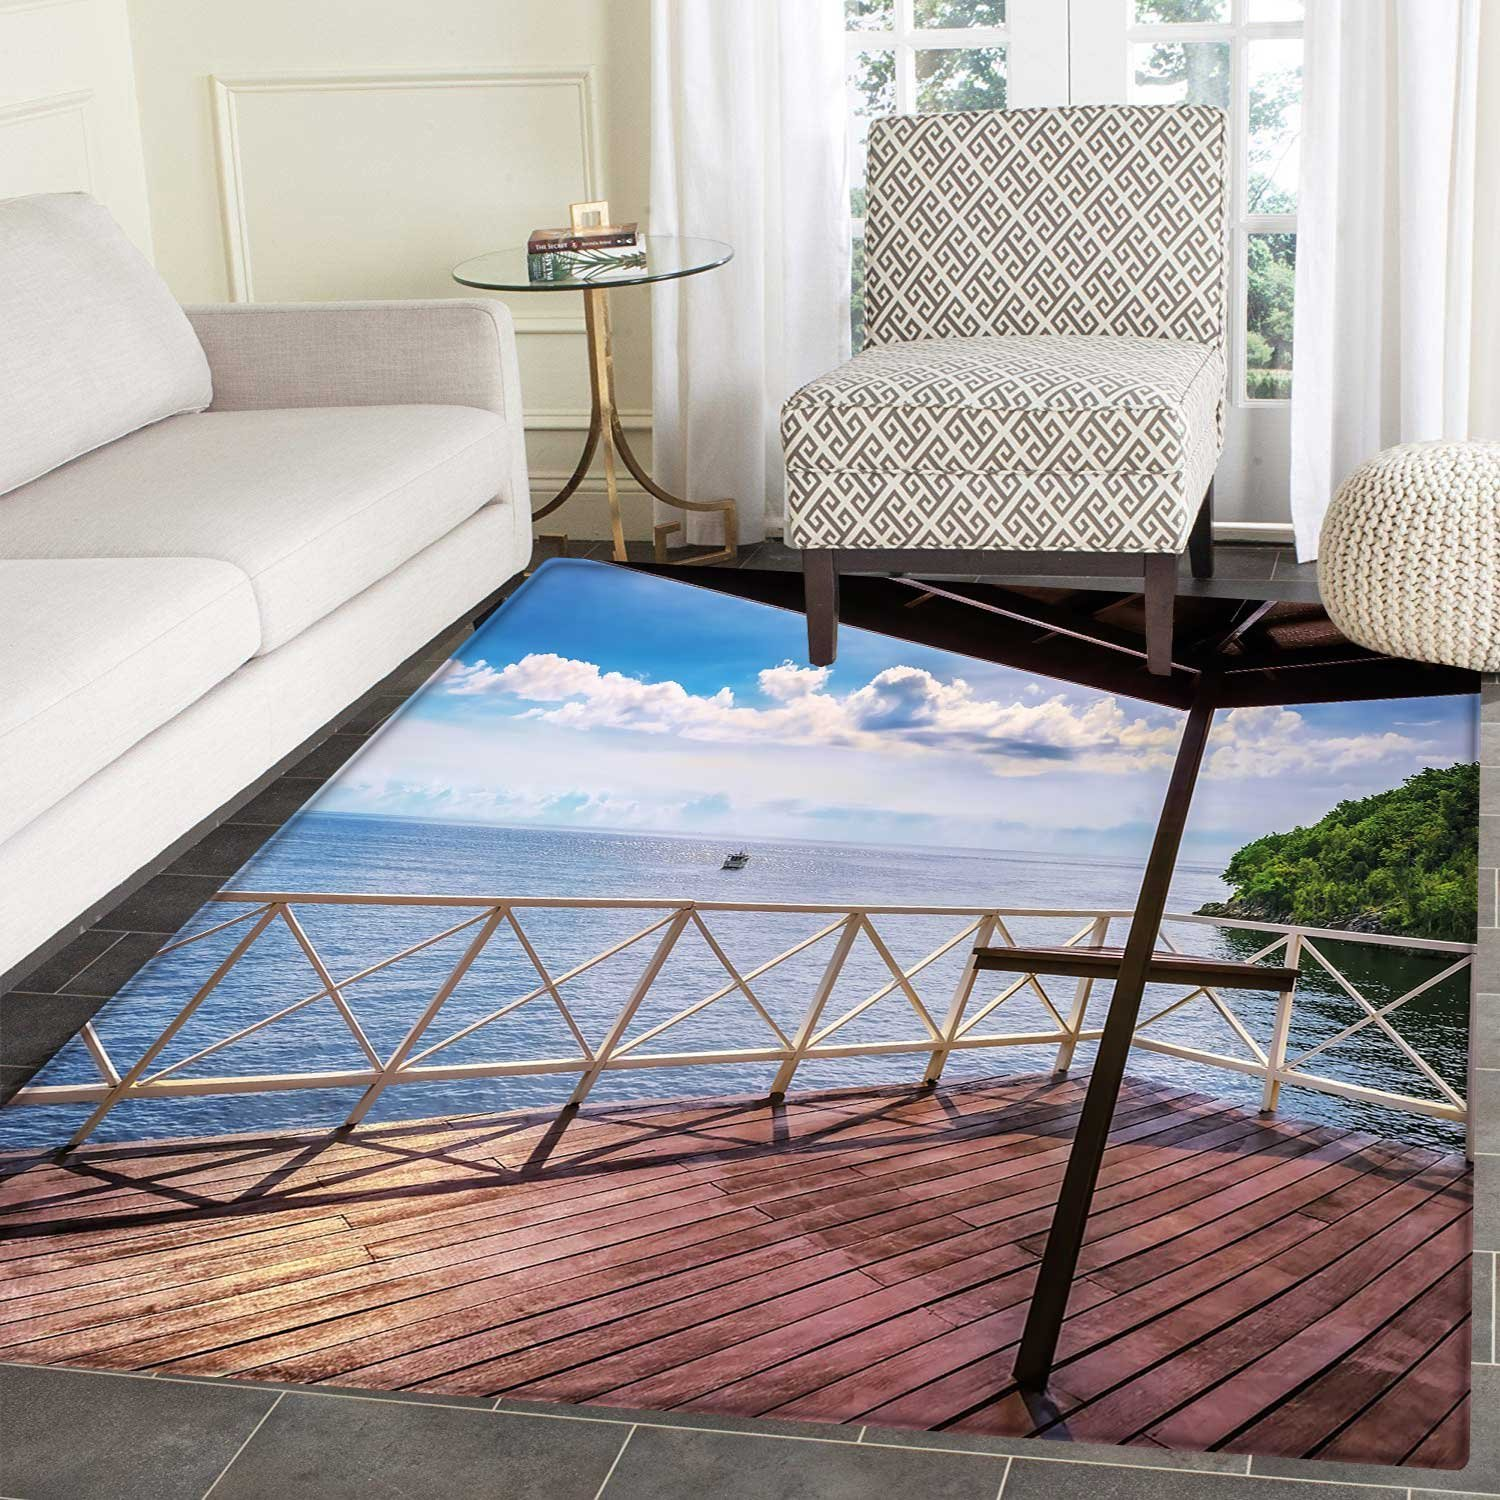 Modern area rug carpet balcony porch sea ocean view in trinidad and tobago island tropic photo image art living dinning room and bedroom rugs 3x4